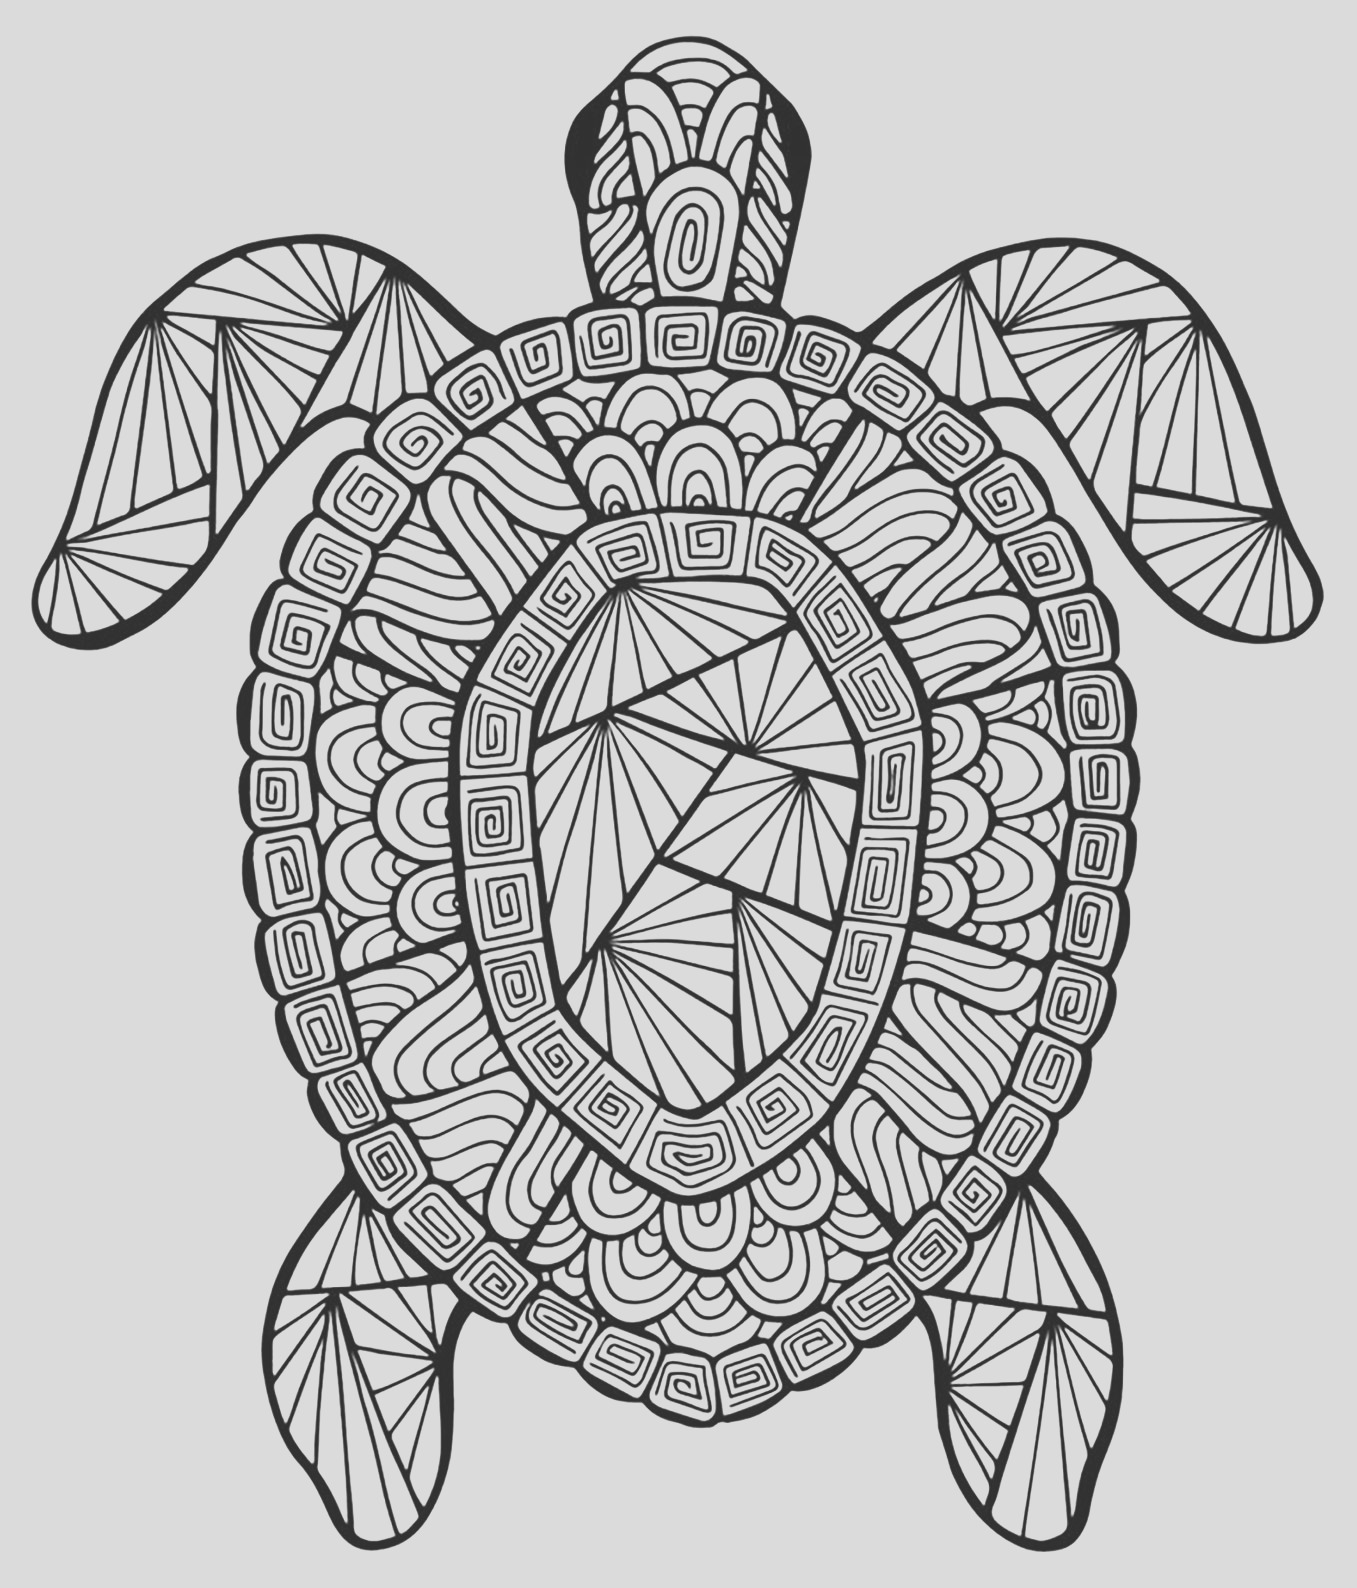 image=turtles coloring page incredible turtle 1